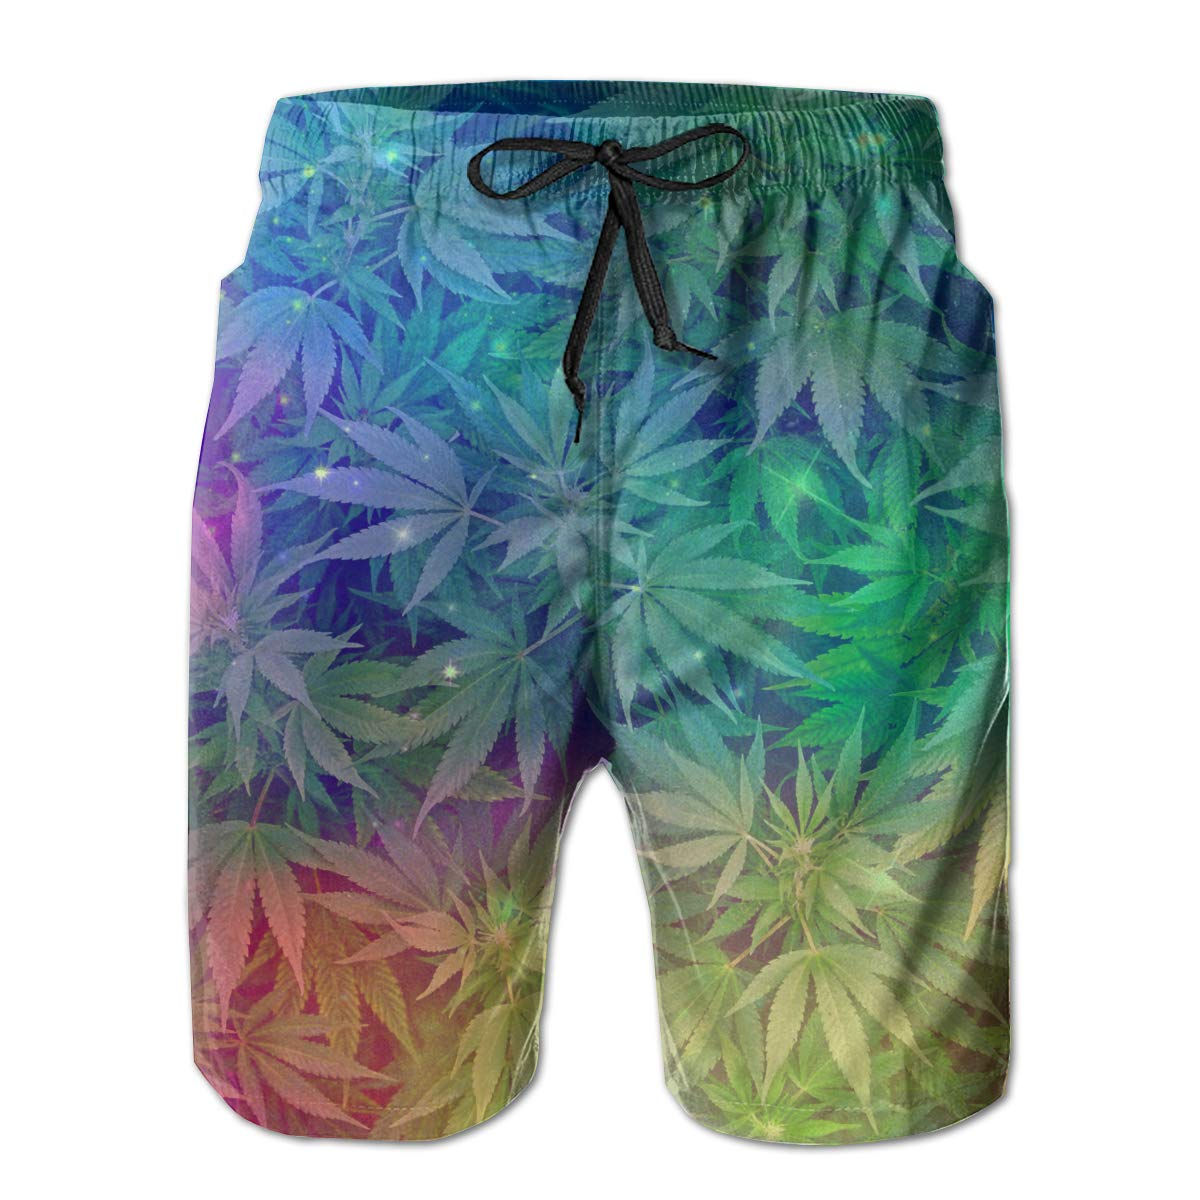 White RolandraceGalactic Nebula Cannabis Weeds Men's Swim Trunks Quick Dry Bathing Suits Beach Holiday Party Board Shorts